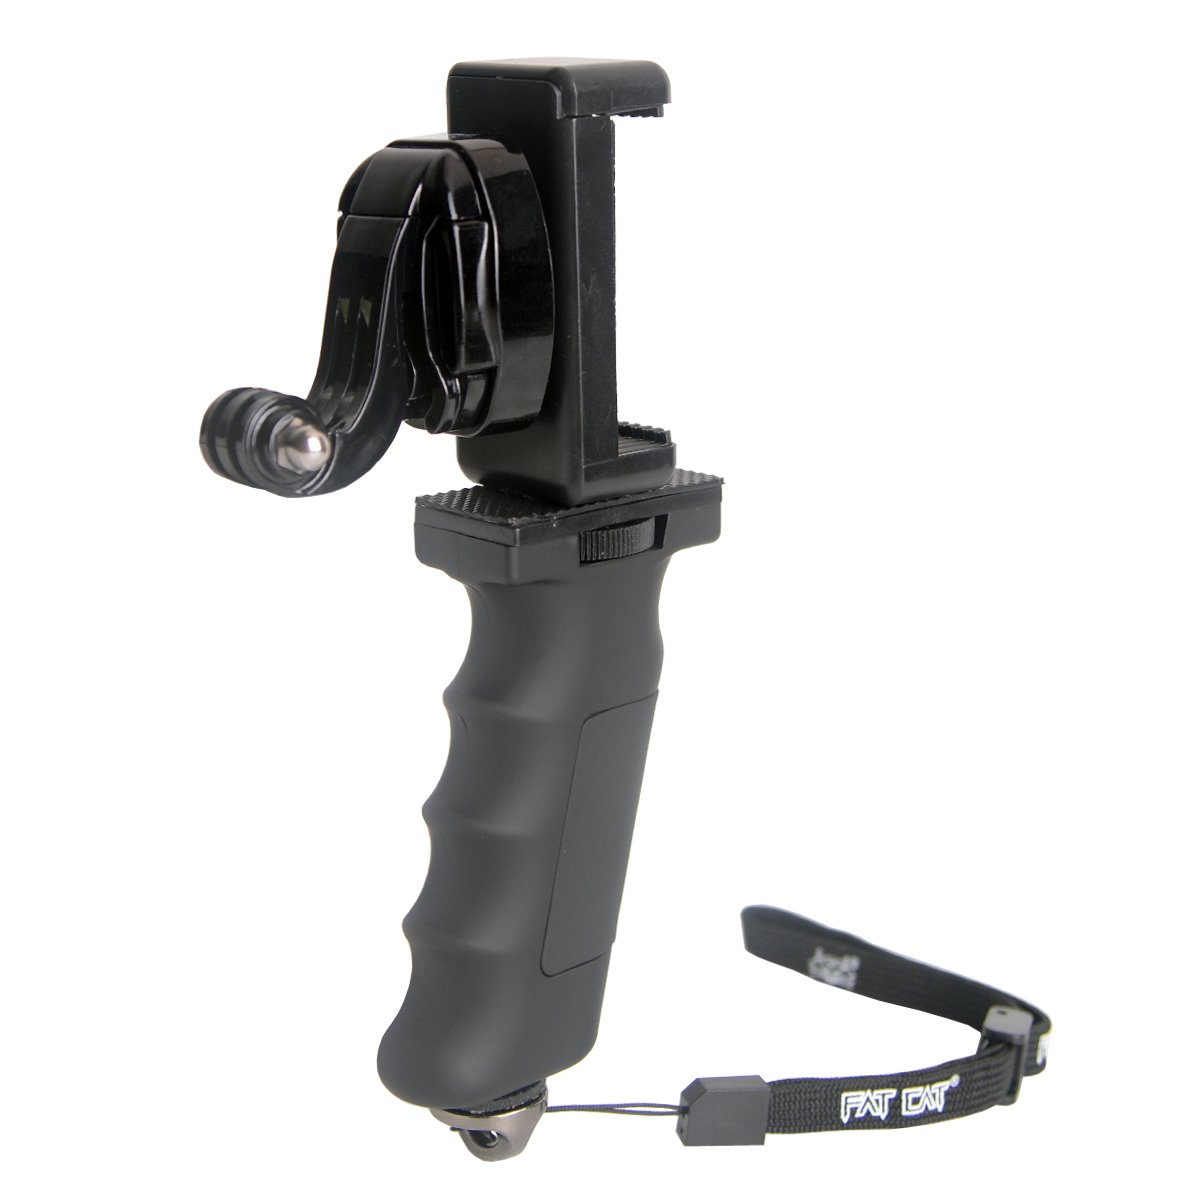 Ergonomic Action Camera Handle Grip Support w/ Smartphone Clip for GoPro Grip Holder Support for GoPro Hero 5 /4/3/Session Garmin Virb XE Xiaomi Yi SJCAM Hand Grip Mount Selfie Stick by non-brand (Image #6)